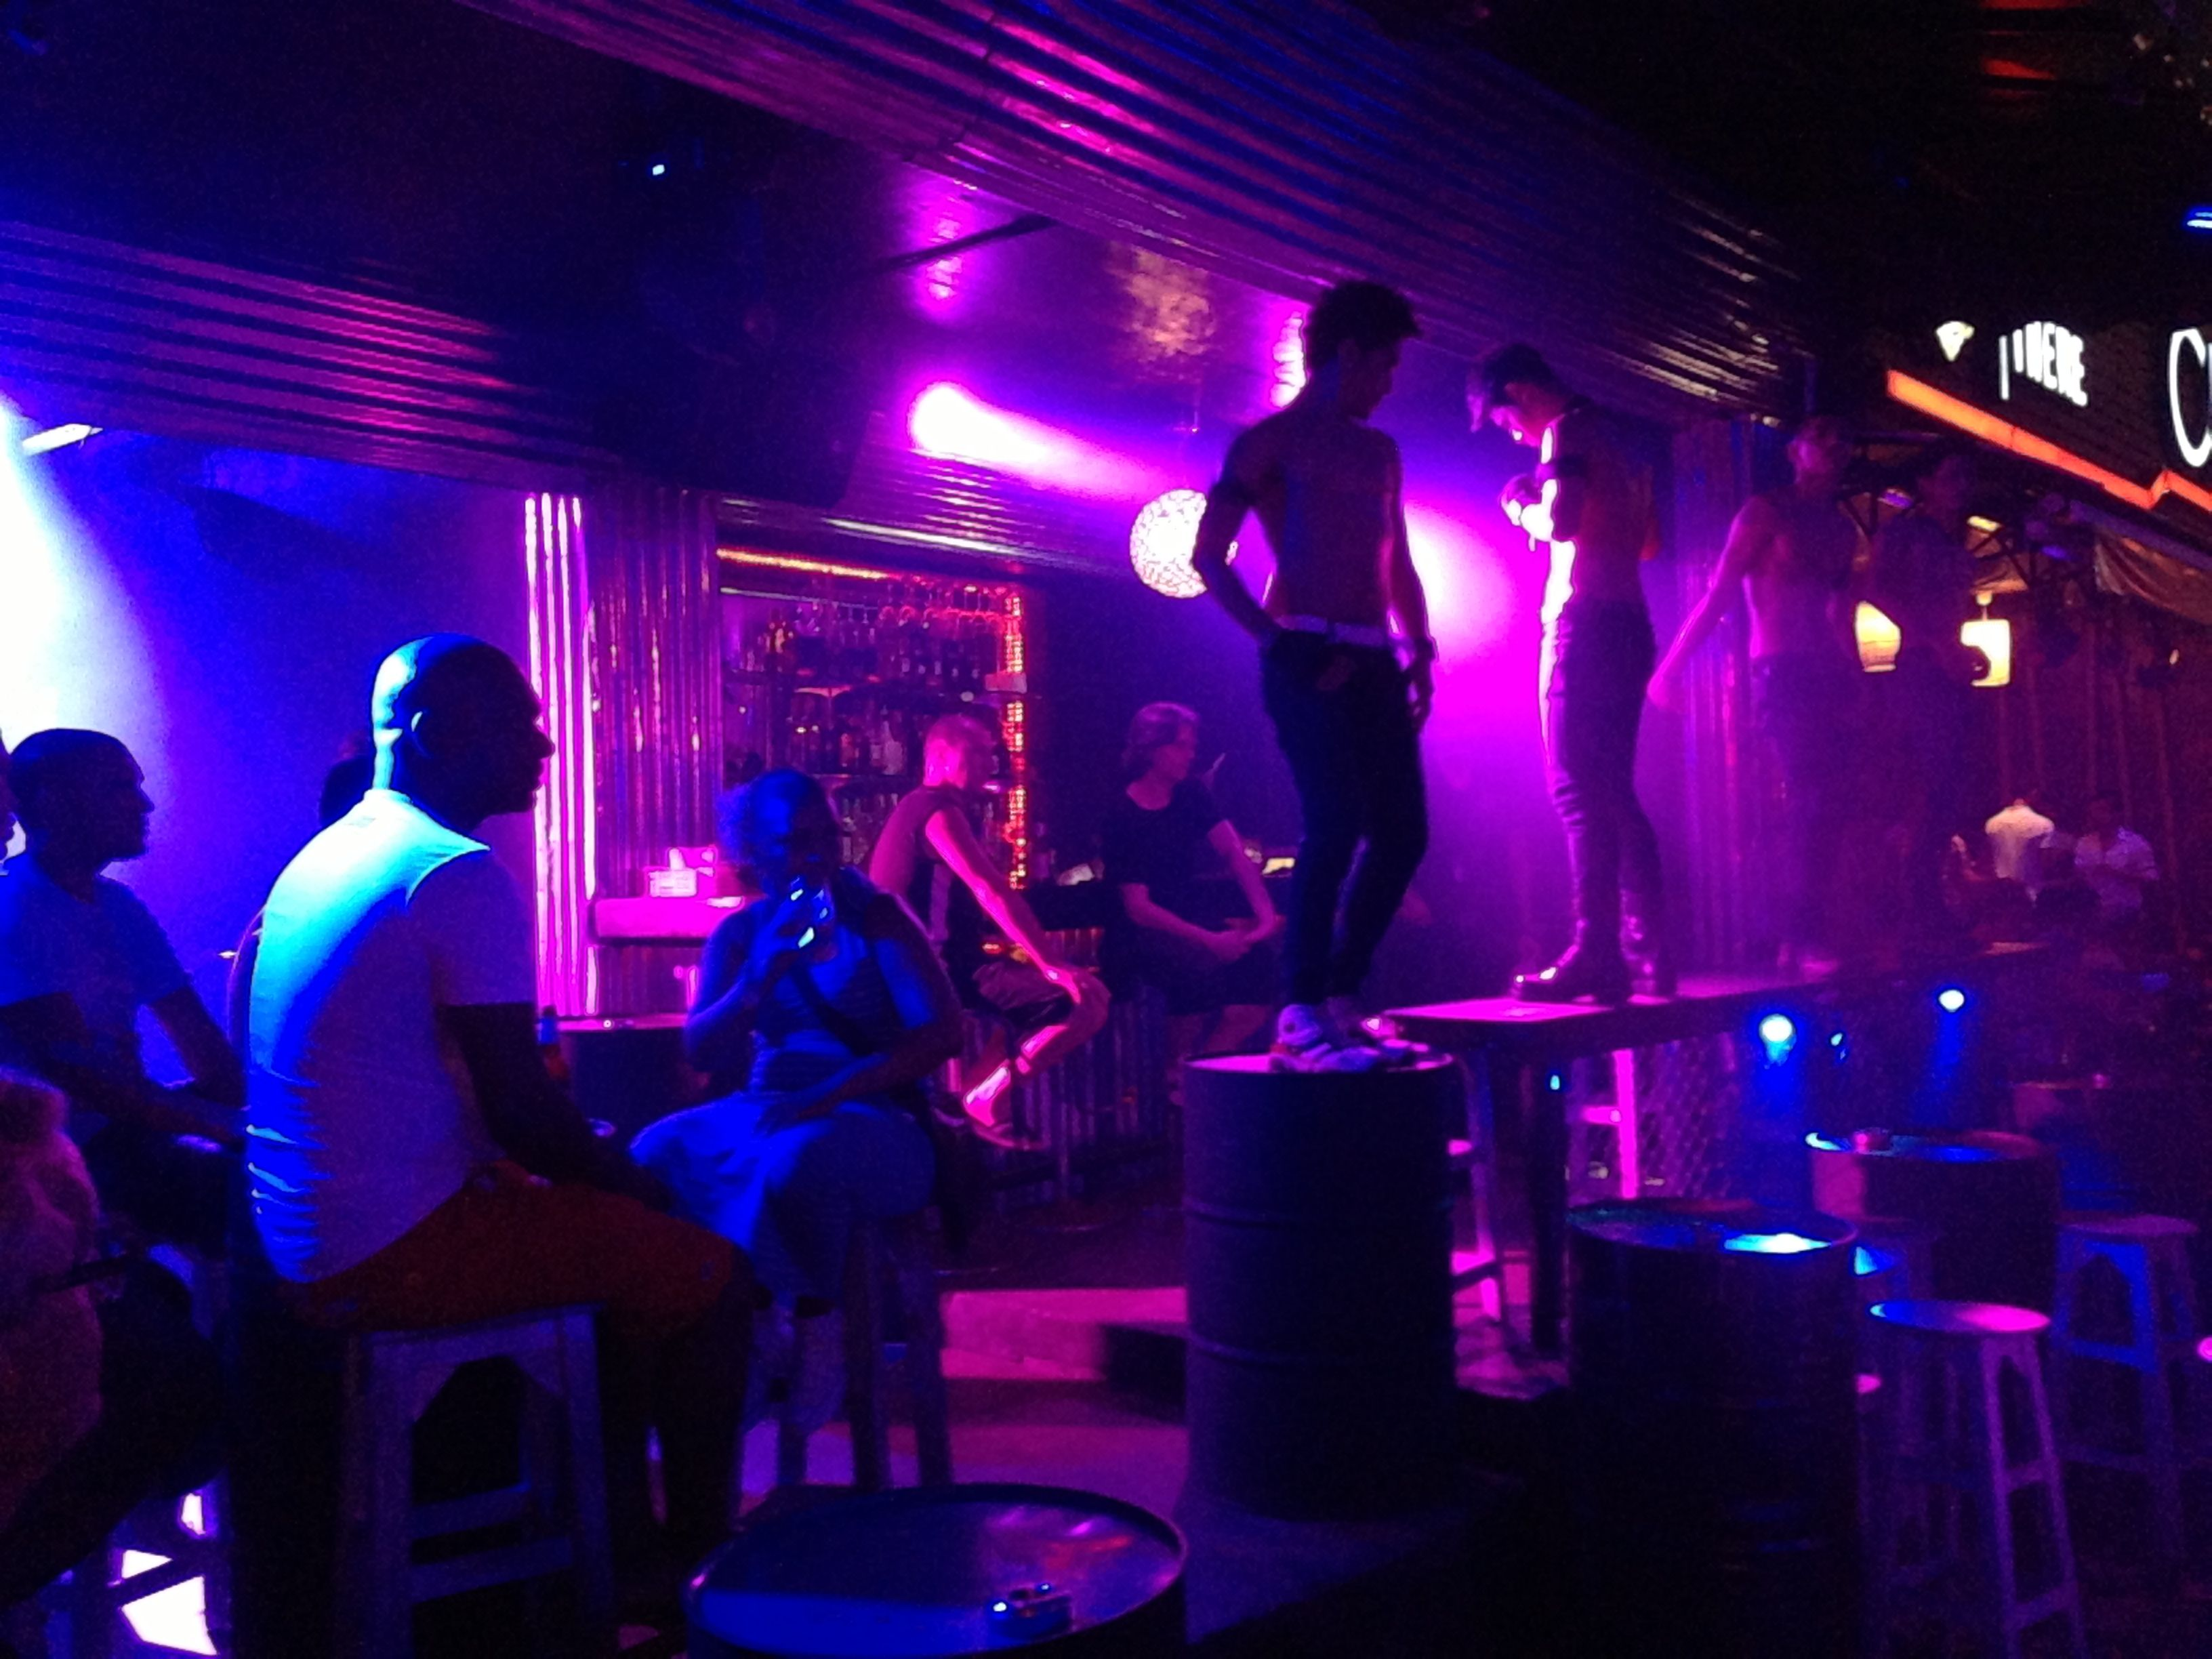 Many bars offer girls on the bars dancing to entertain the visitors and adding styled entertainment.